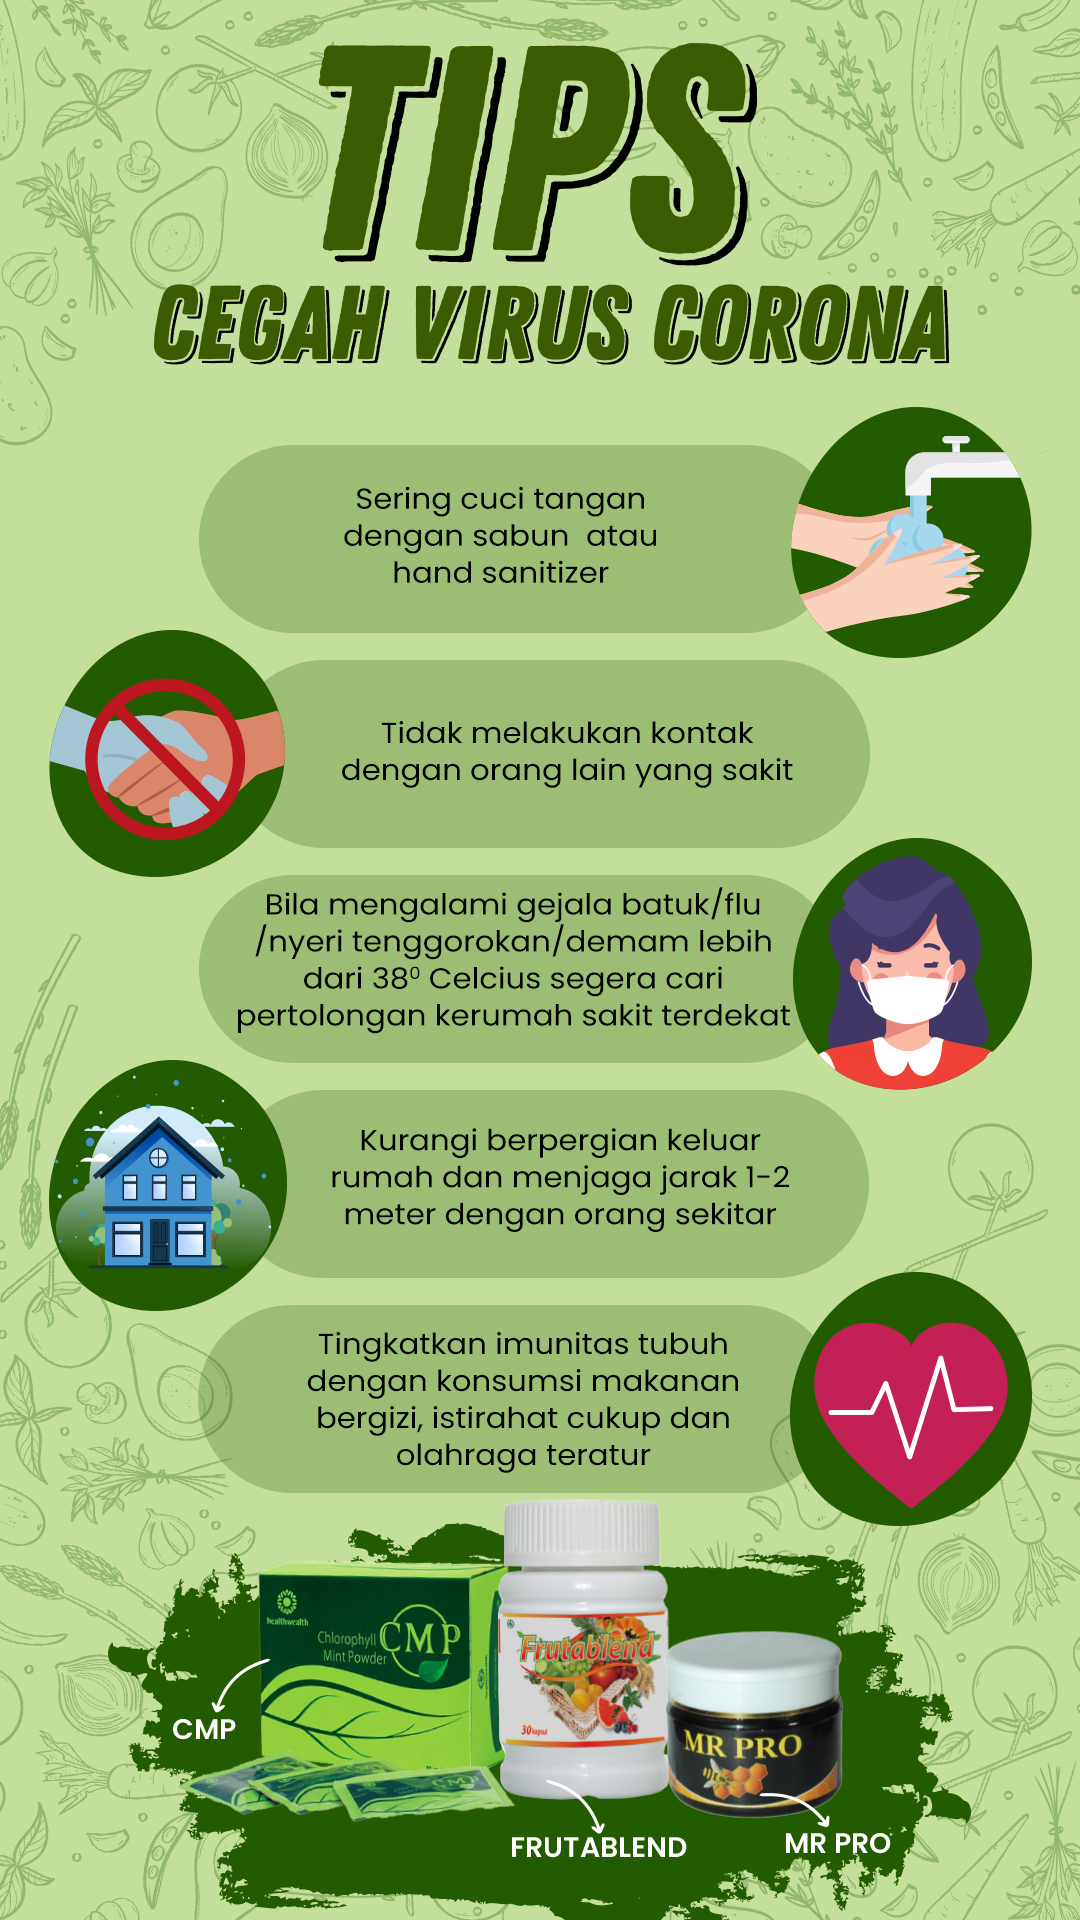 tips cegah virus corono